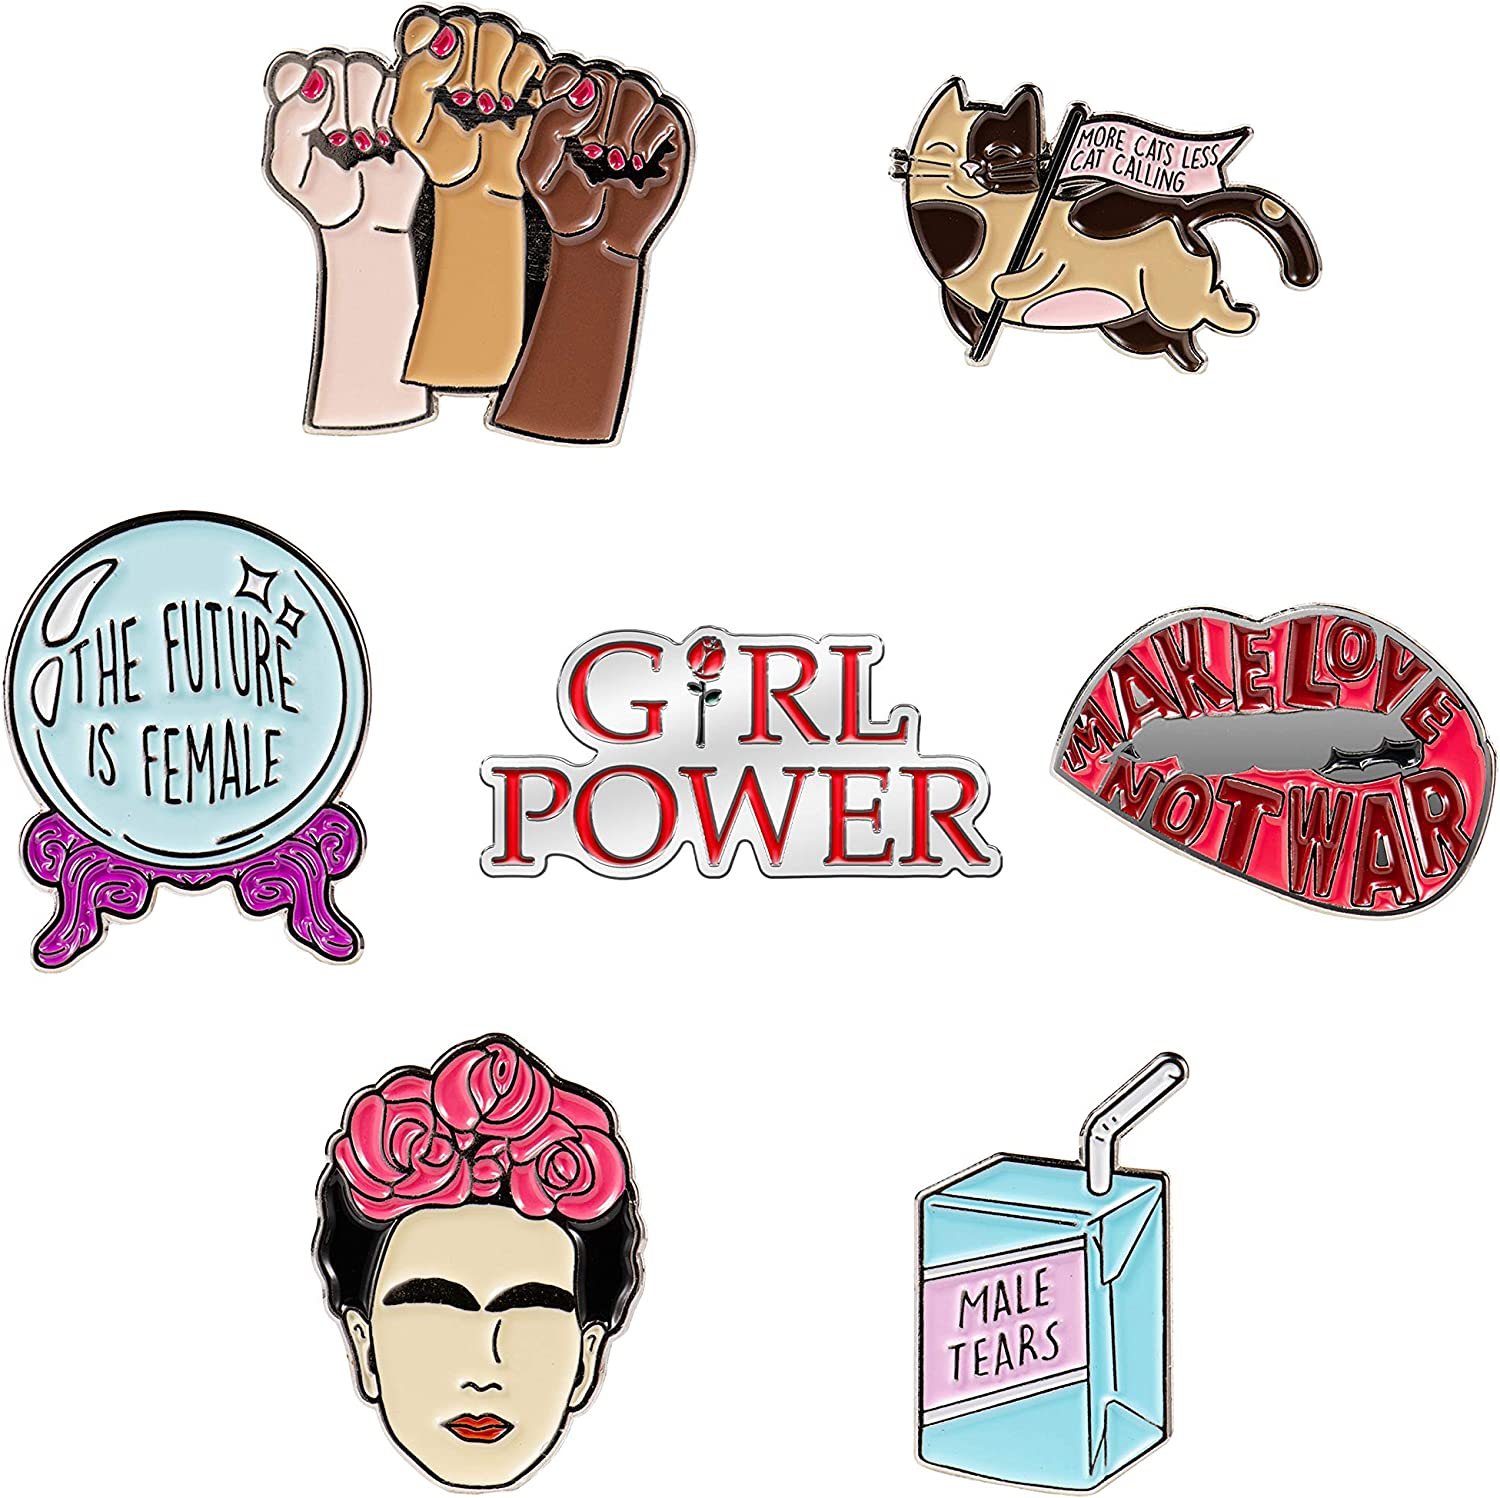 7 Cute Enamel Pins For Backpacks | Enamel Pin Set For Feminist Gifts | Cute Pins | Backpack Pins | Cat Pins | Funny and Cool Pins (Set 1)